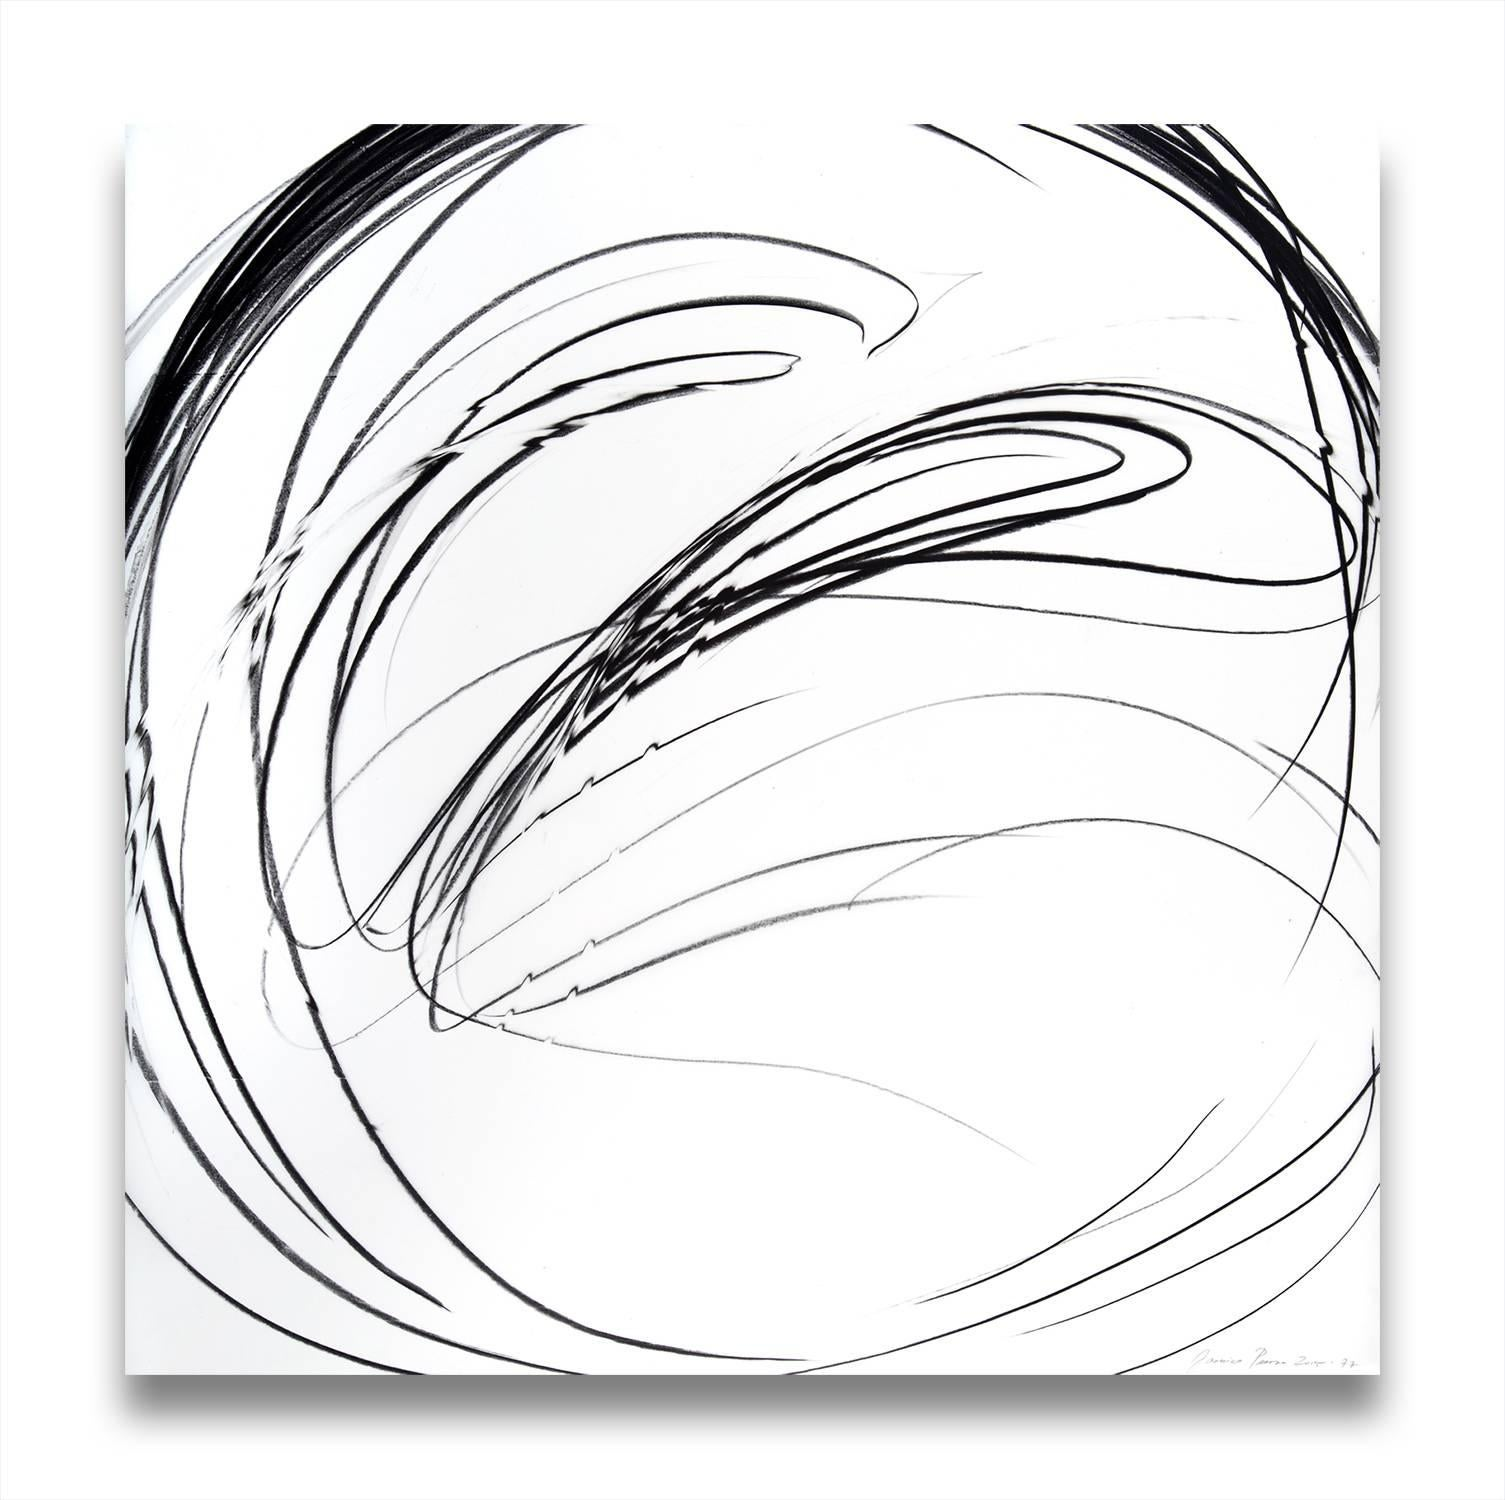 Maelstrom Series 77 (Abstract drawing)